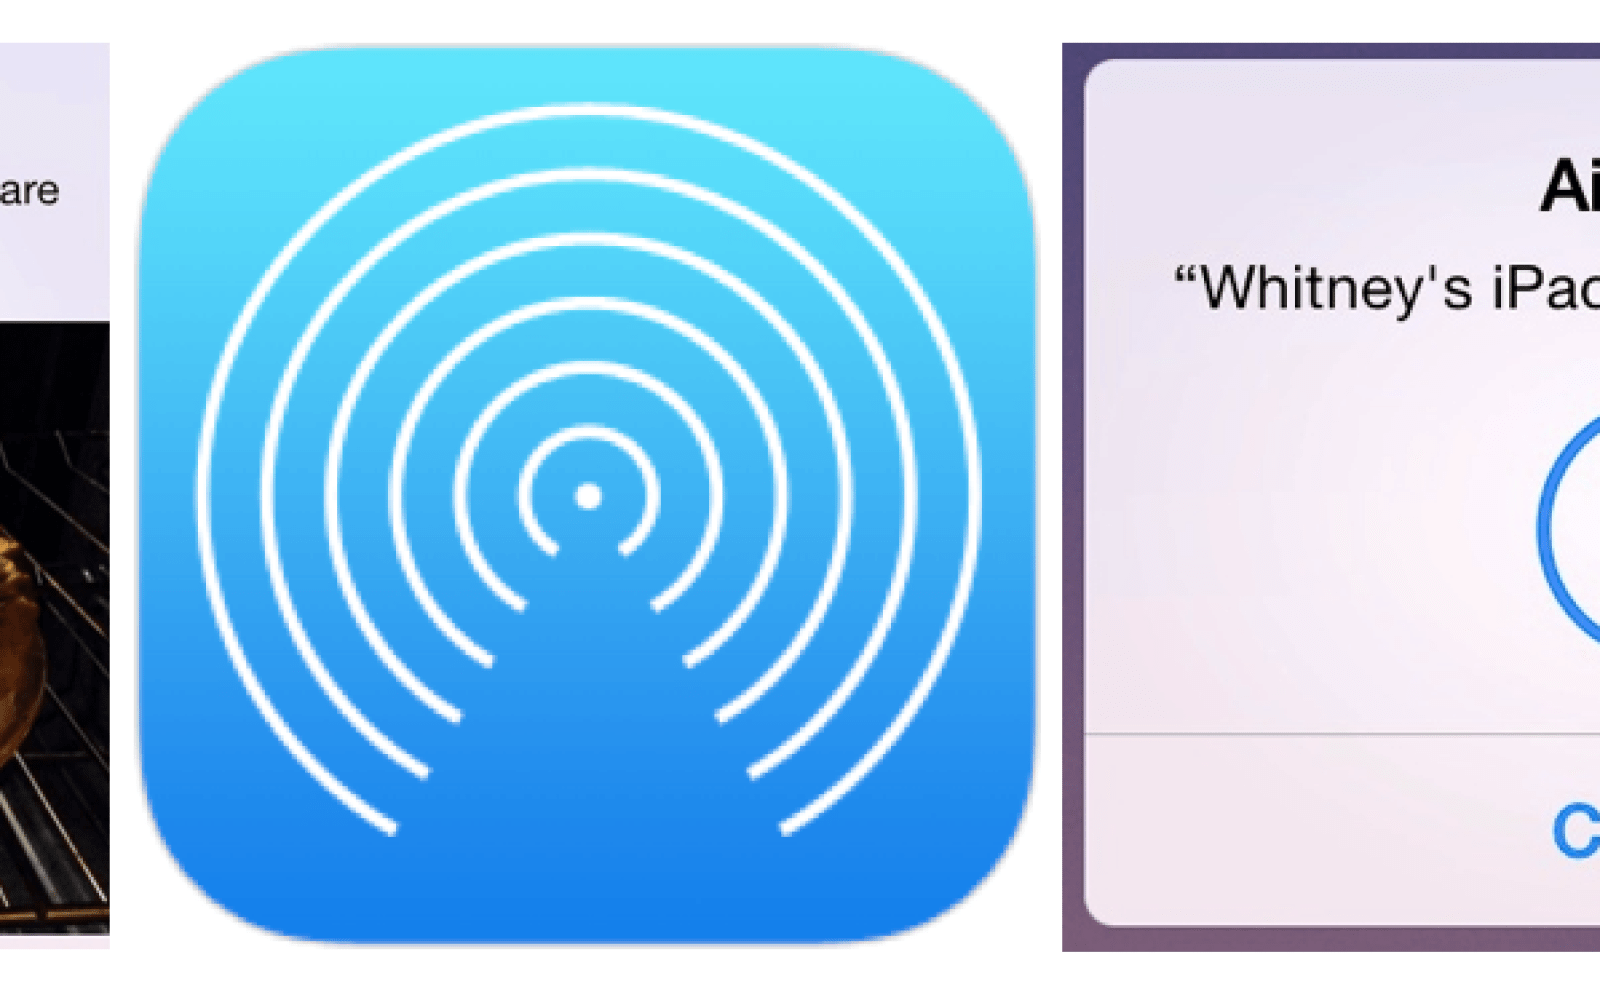 How-to: Use AirDrop to share files between iOS devices [Poll